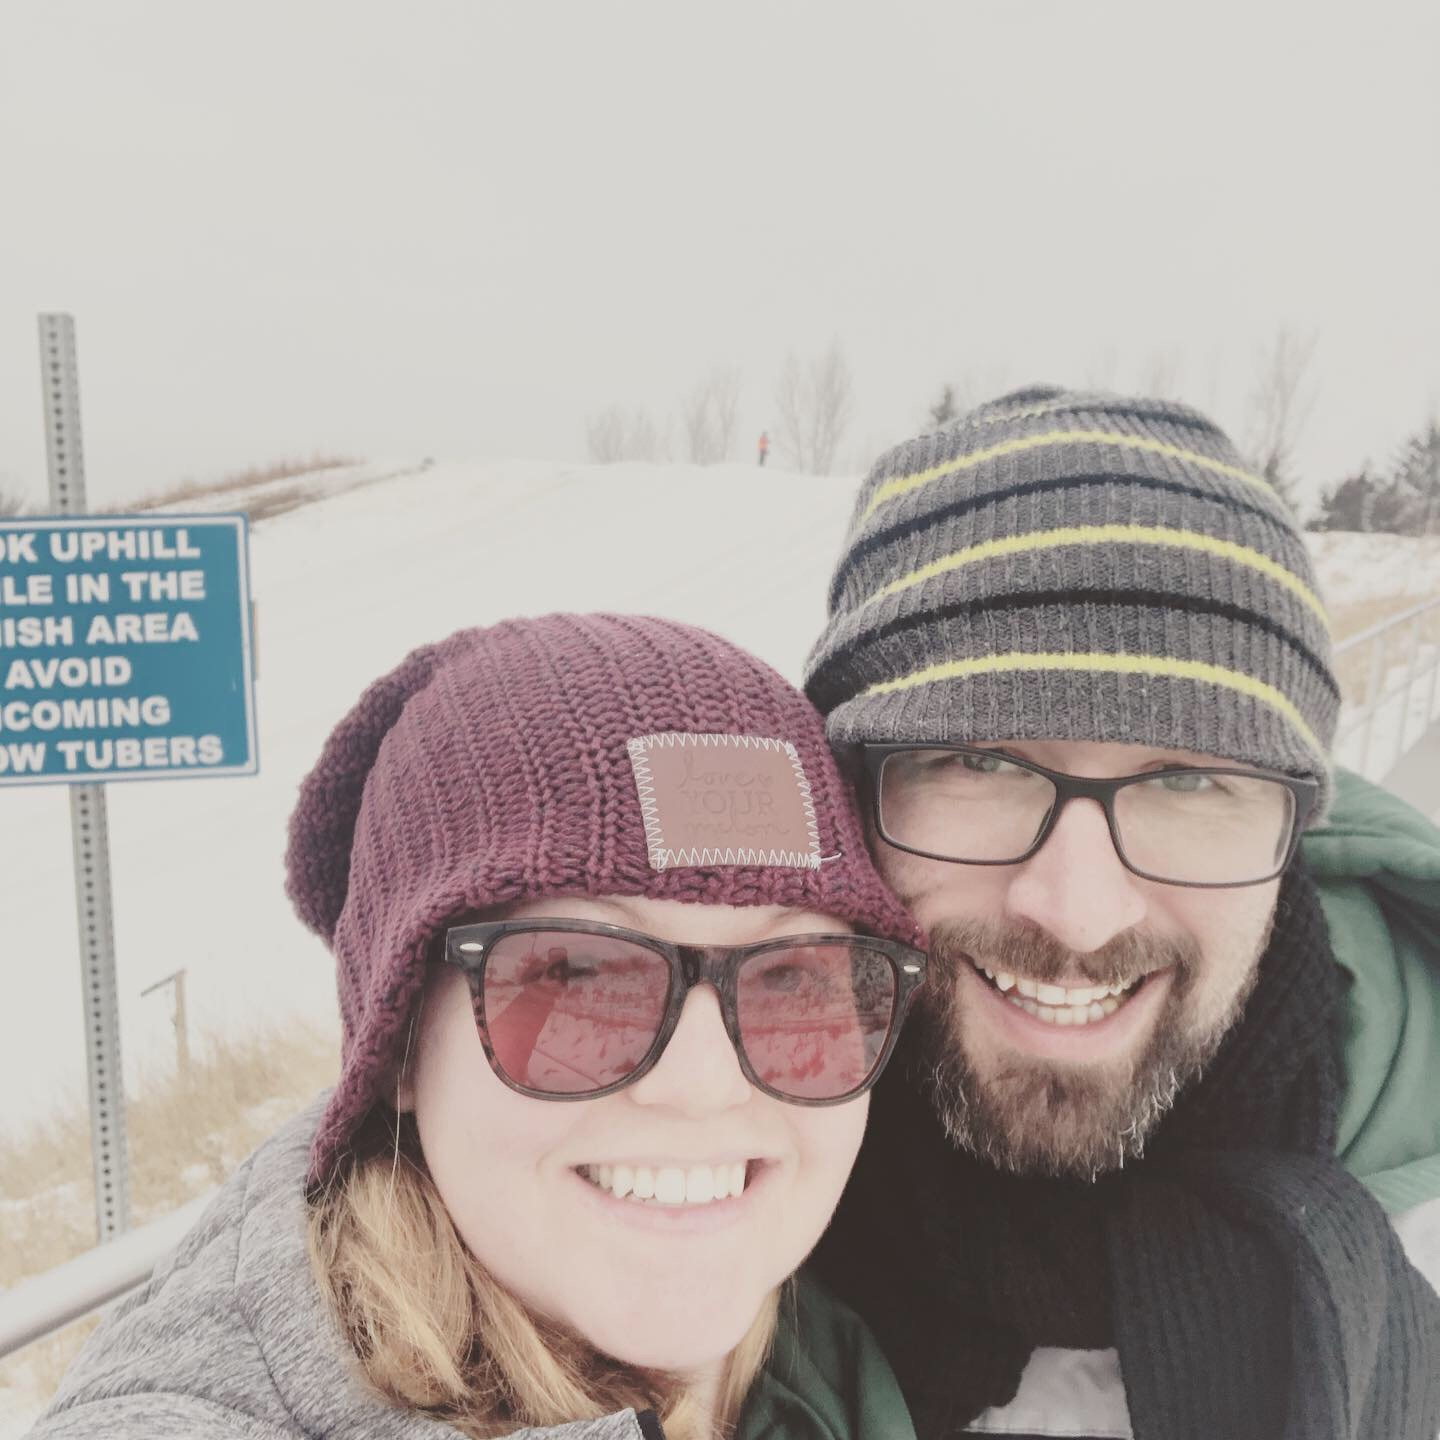 Abby and Chad Wildeboer selfie on a hiking trail